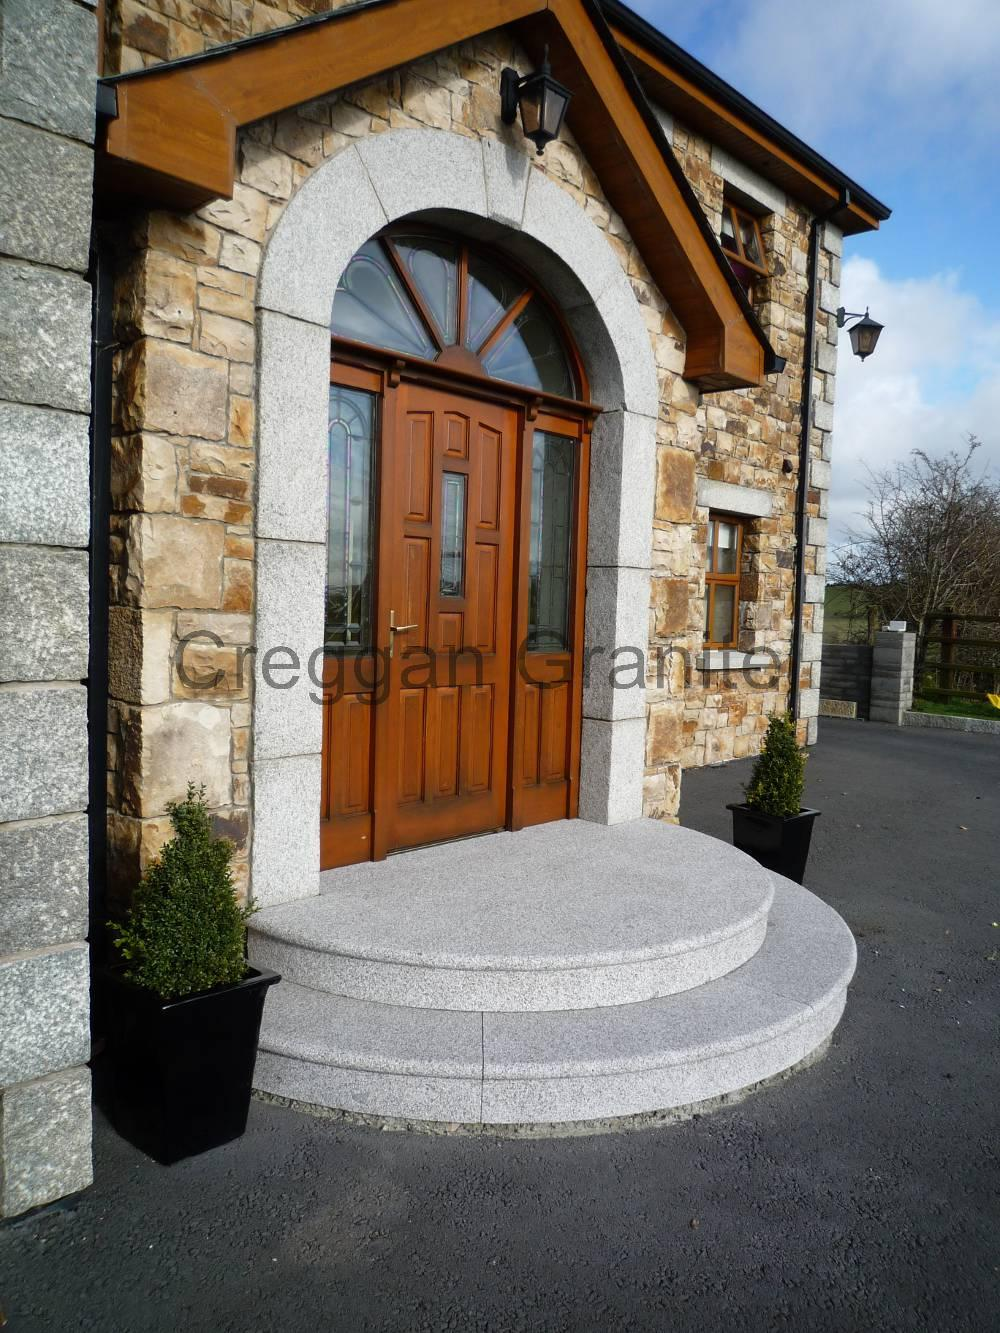 Steps Creggan Granite Ireland Creggan Granite Ireland